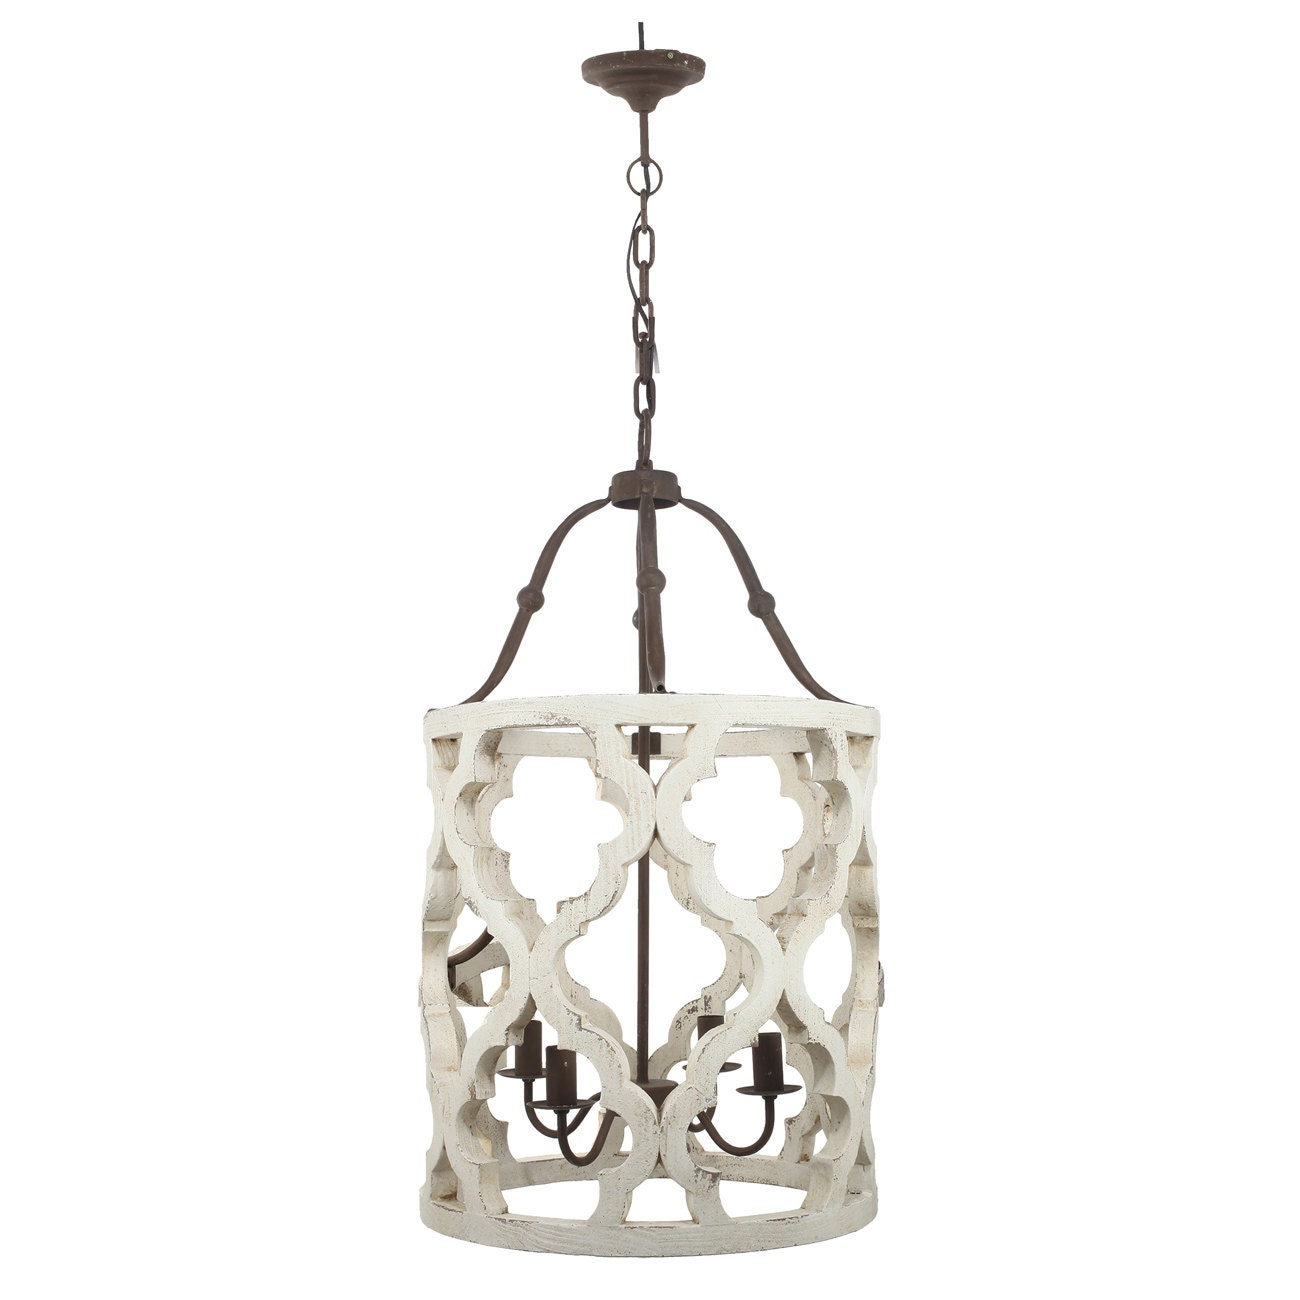 4 Light Quatrefoil White Distressed Chandelier Painted French